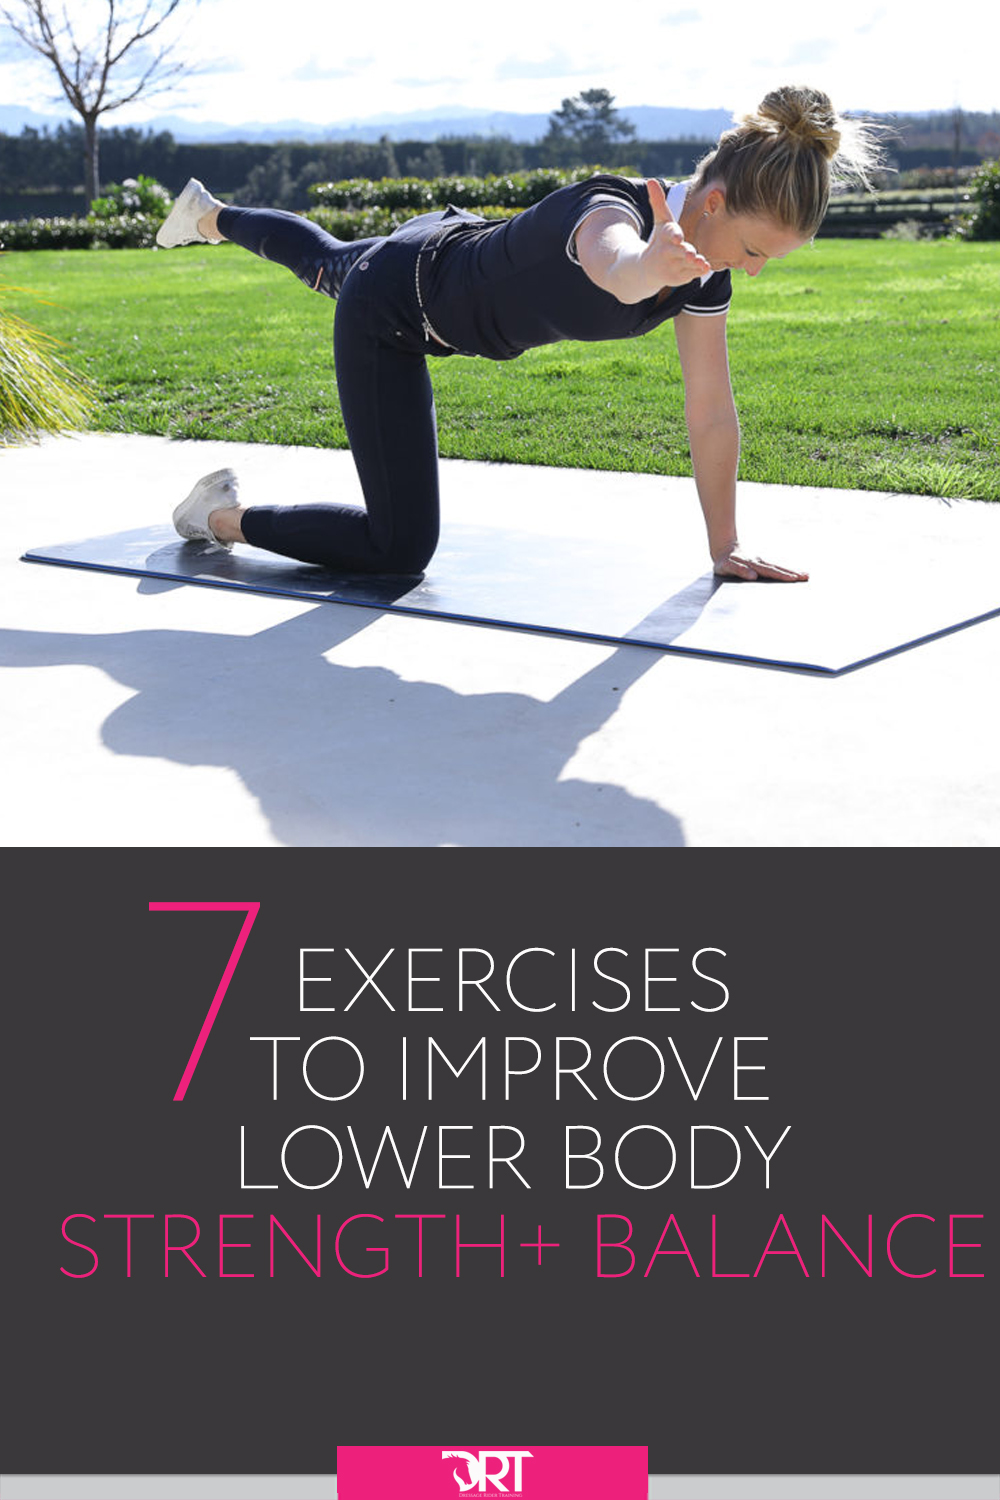 Here are 7 exercises to help improve you lower body strength and balance for dressage. #dressage #dressagerider #dressagetraining #dressageexercises